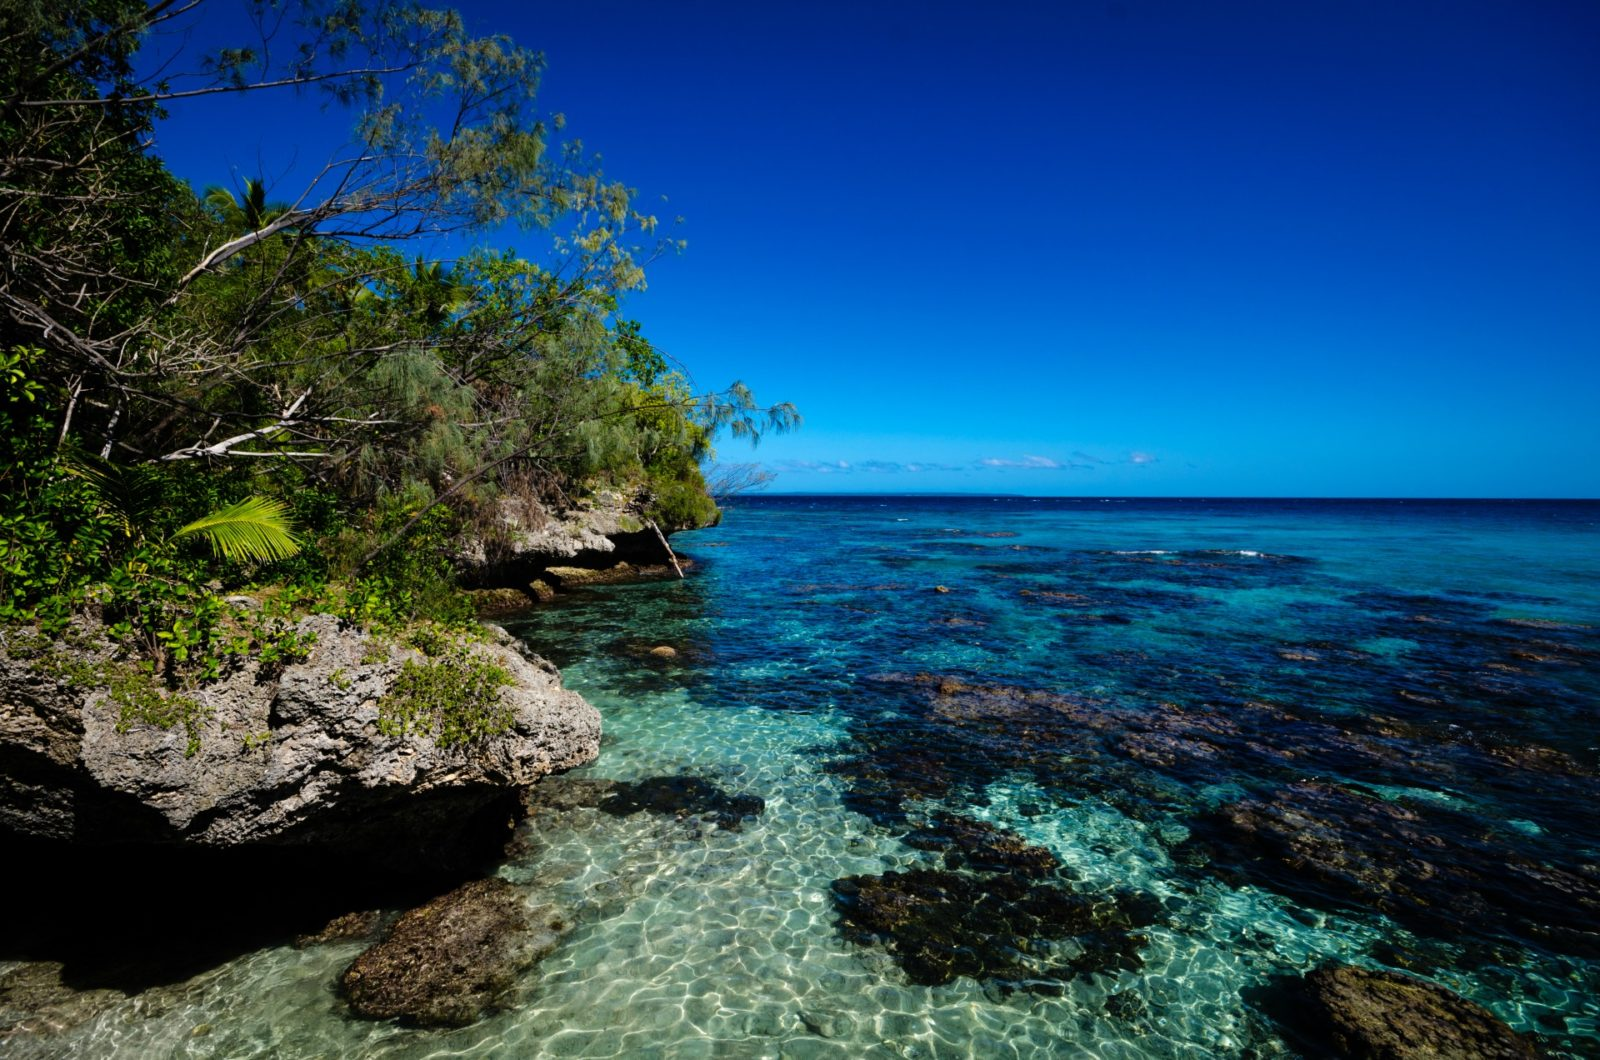 A trip to stunning Lifou in New Caledonia is on the itinerary. Source: Getty